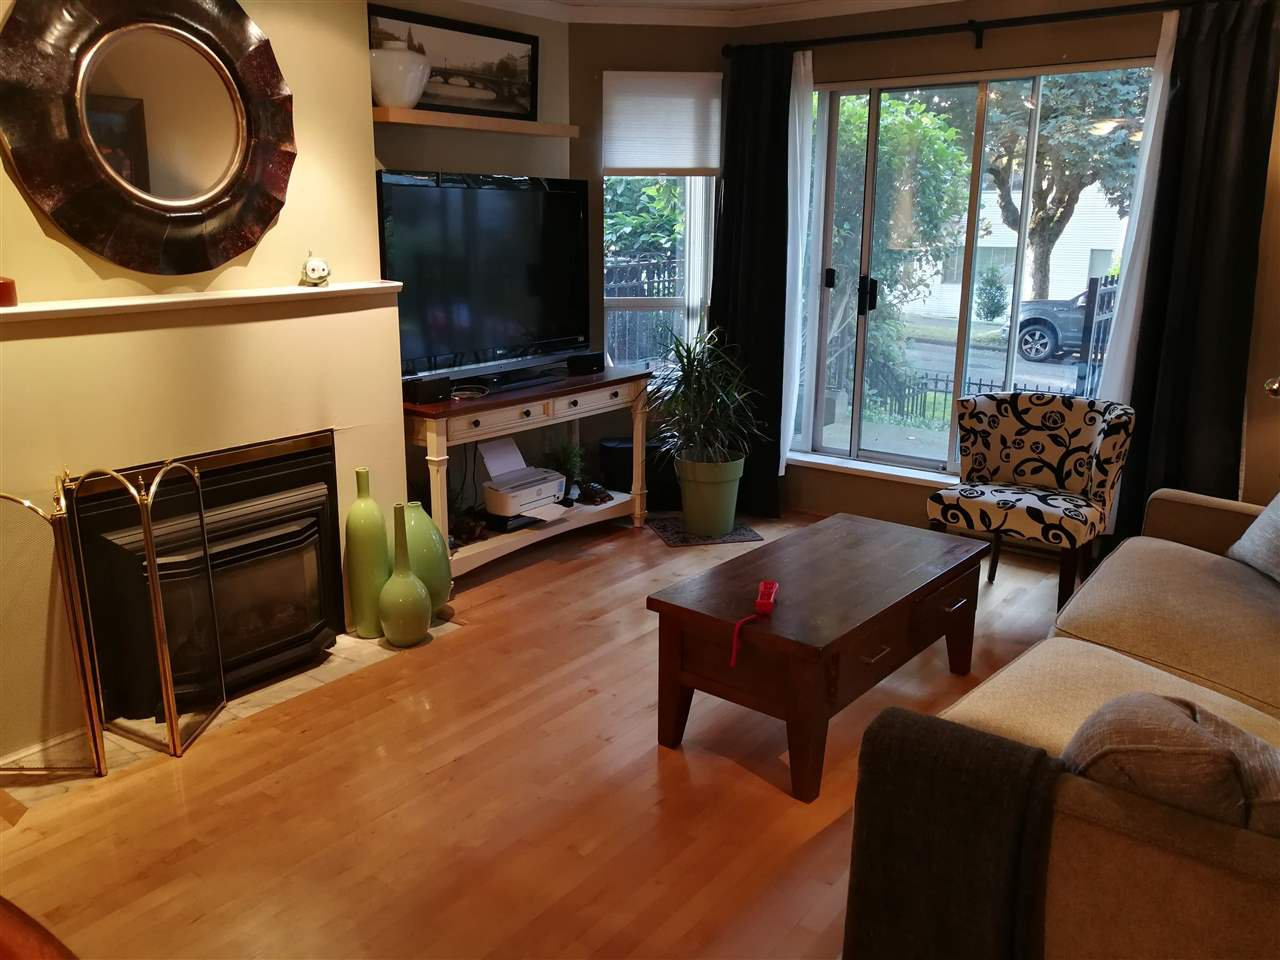 Main Photo: 102 1988 MAPLE Street in Vancouver: Kitsilano Condo for sale (Vancouver West)  : MLS®# R2472334